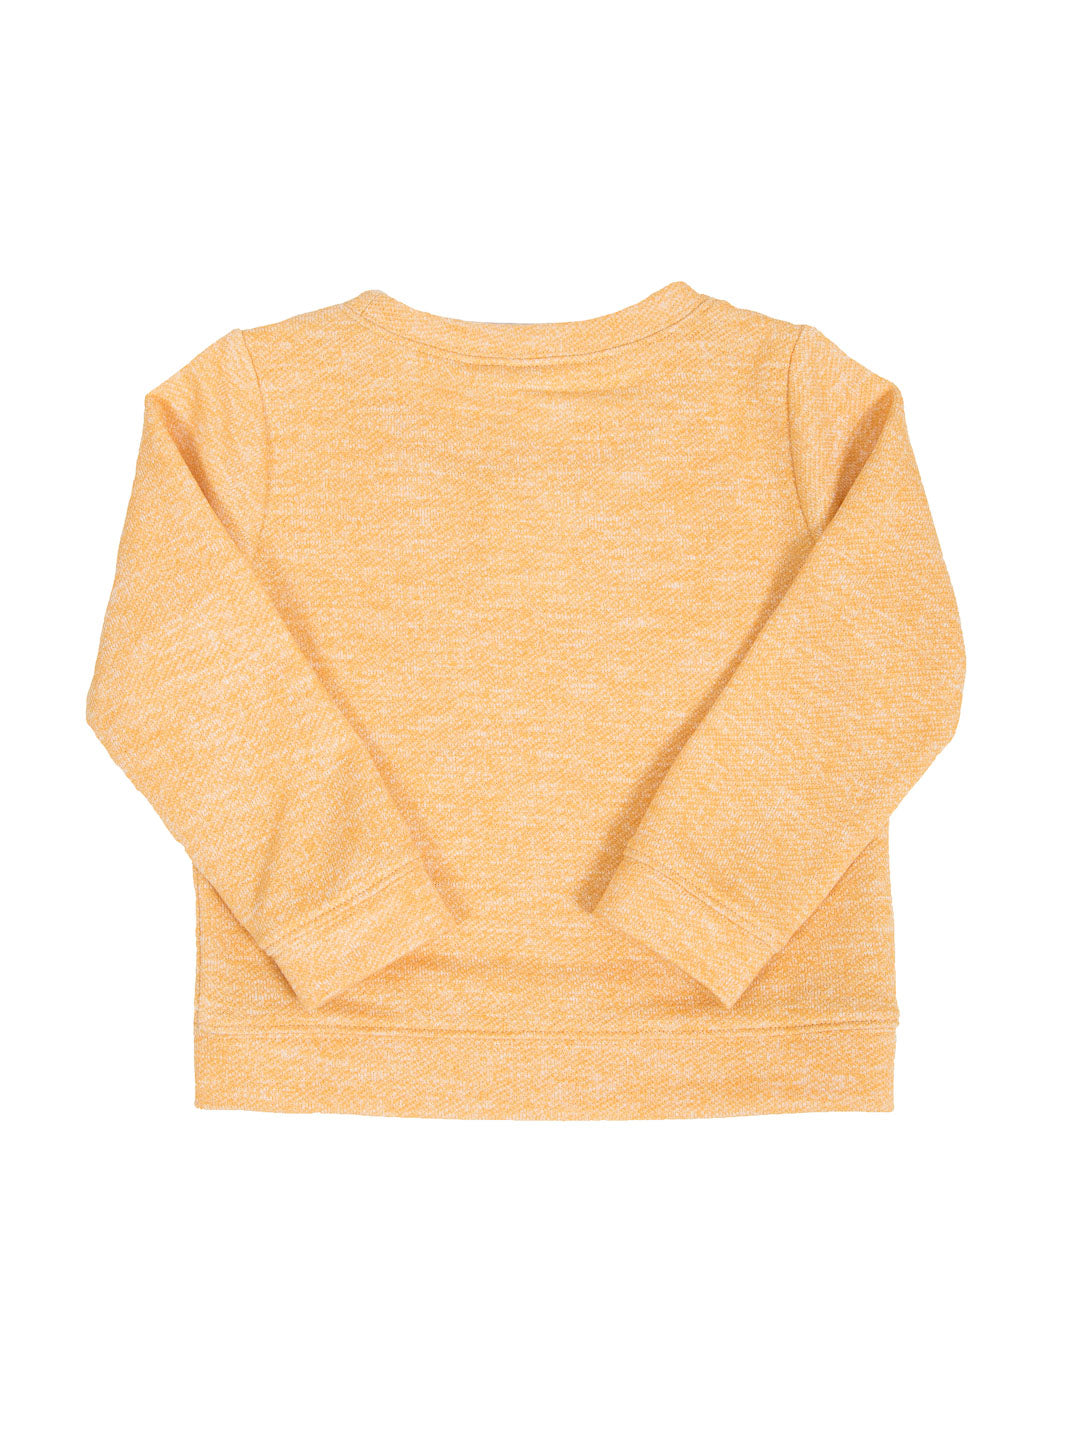 (Kids) The Mini 'Thank You' Sweatshirt